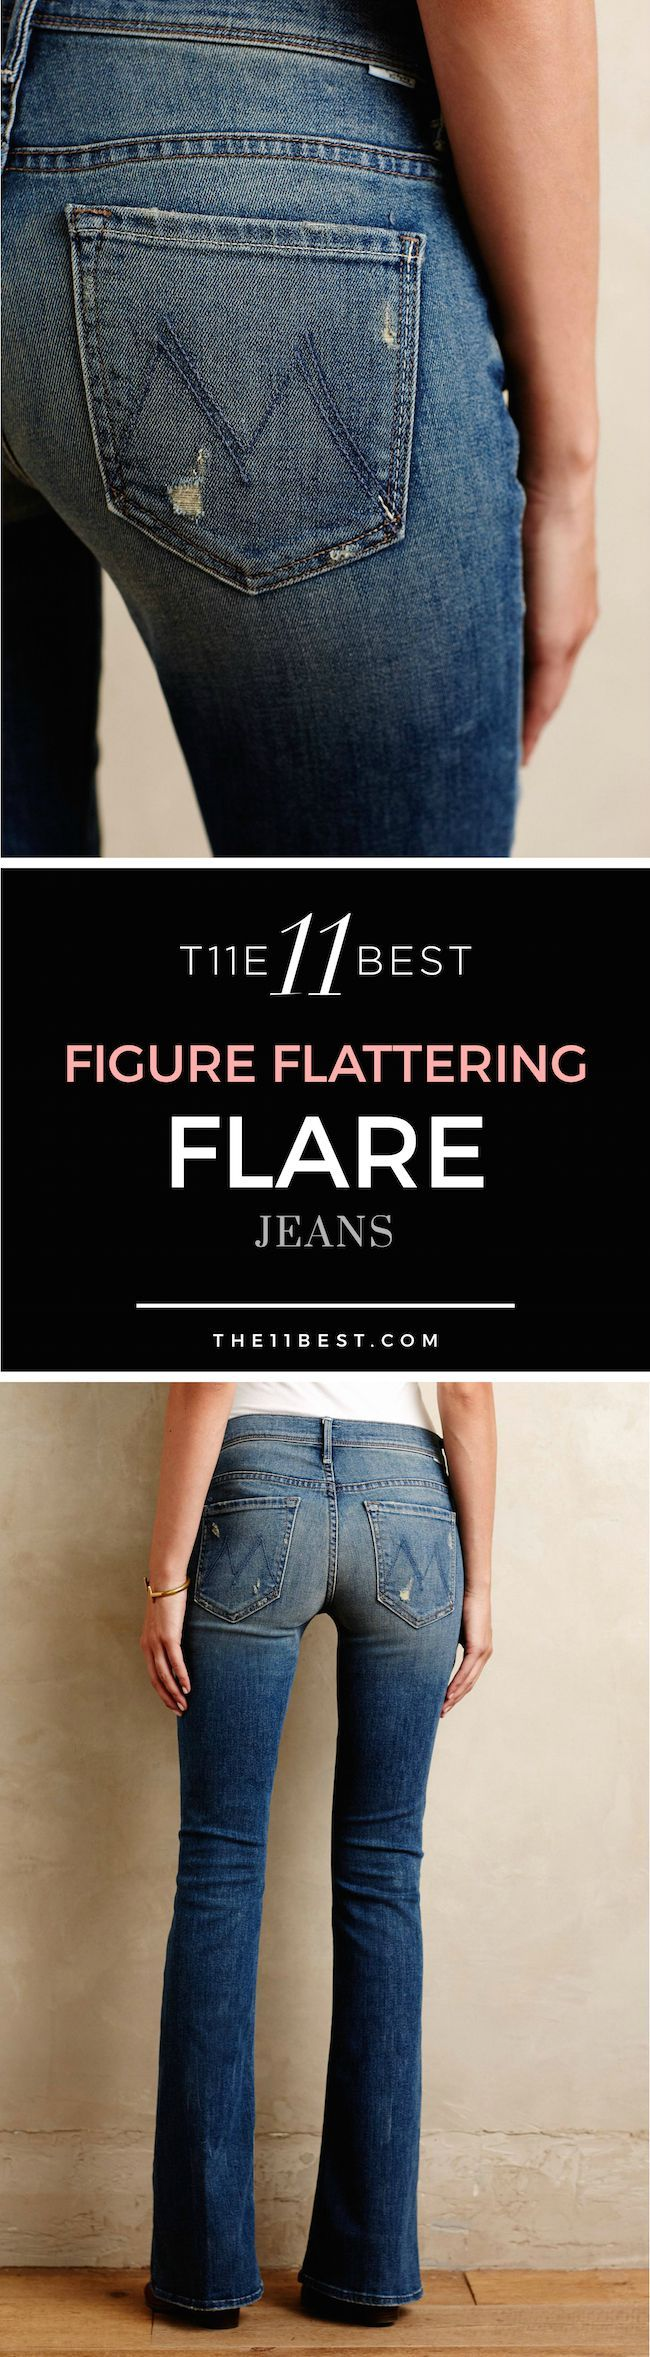 The 11 Best Flare Jeans